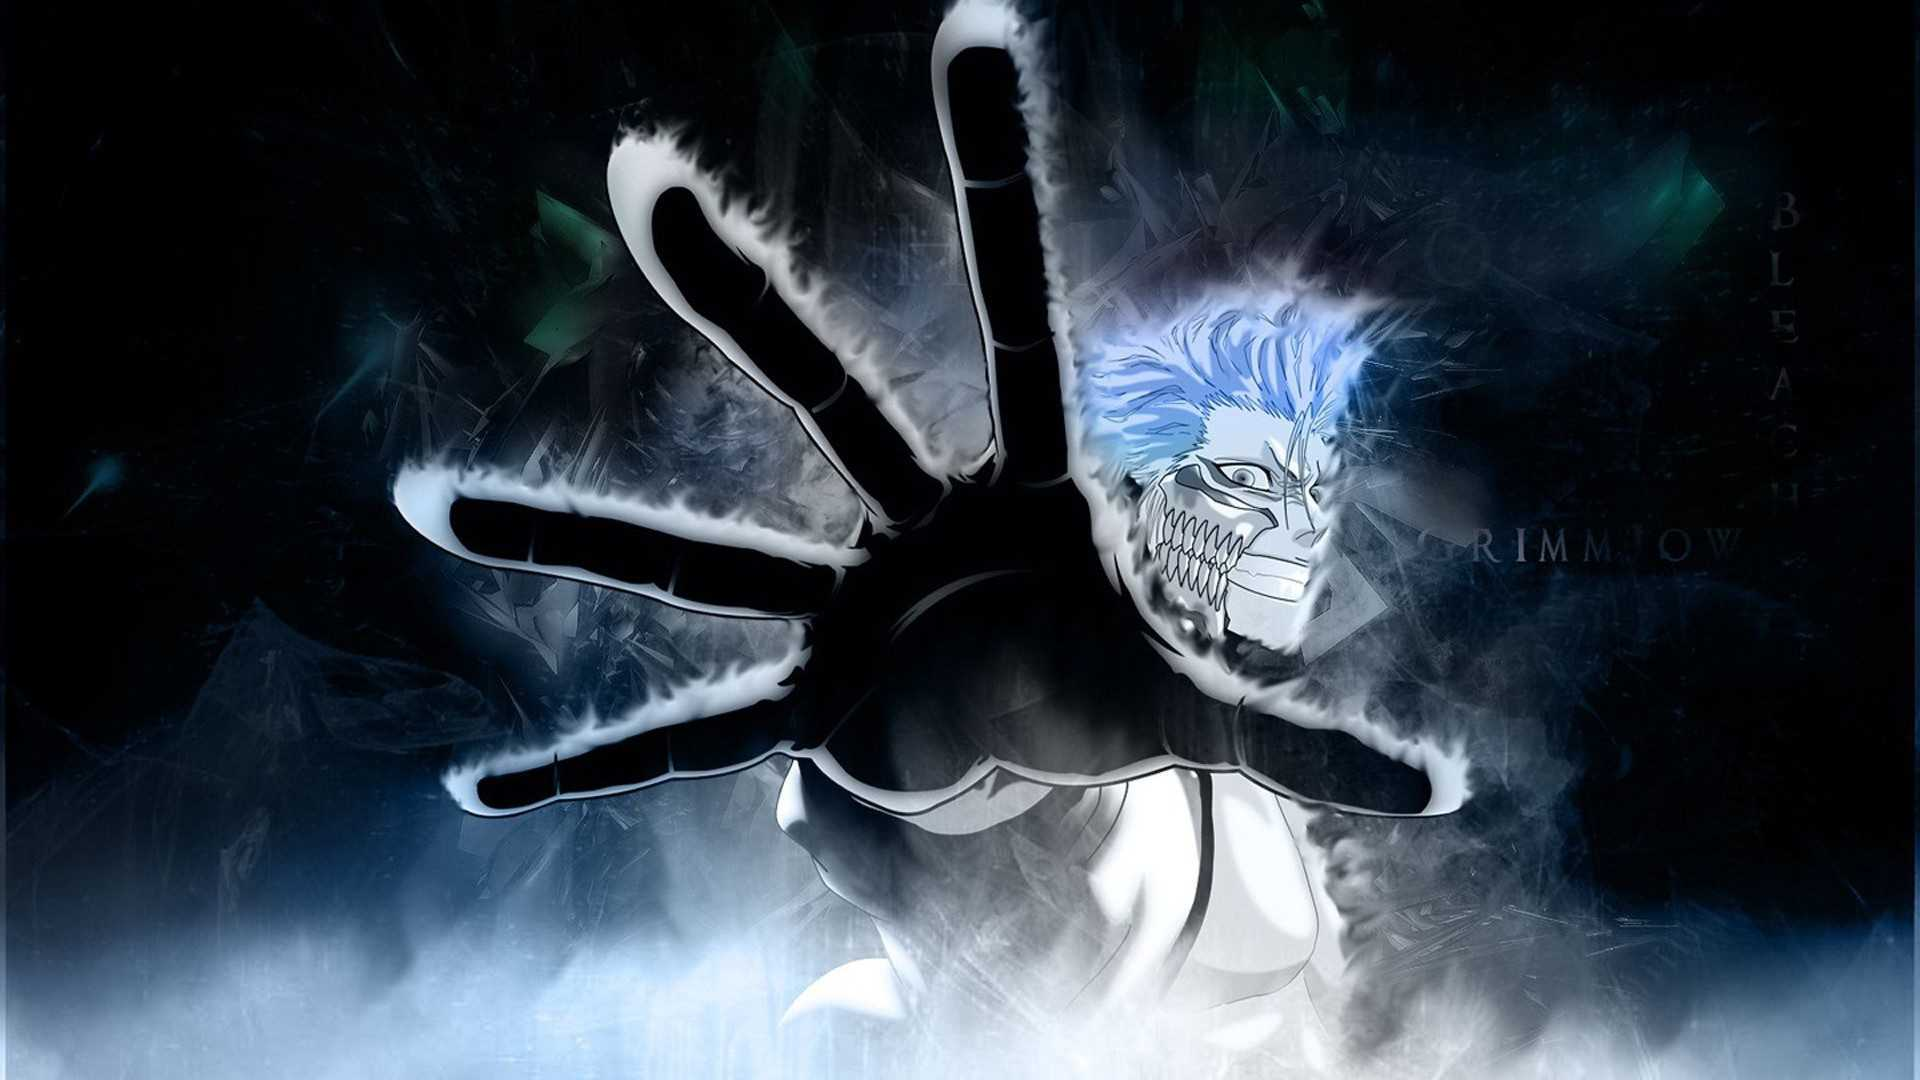 Anime Manga Bleach Image For Android Hd Wallpaper